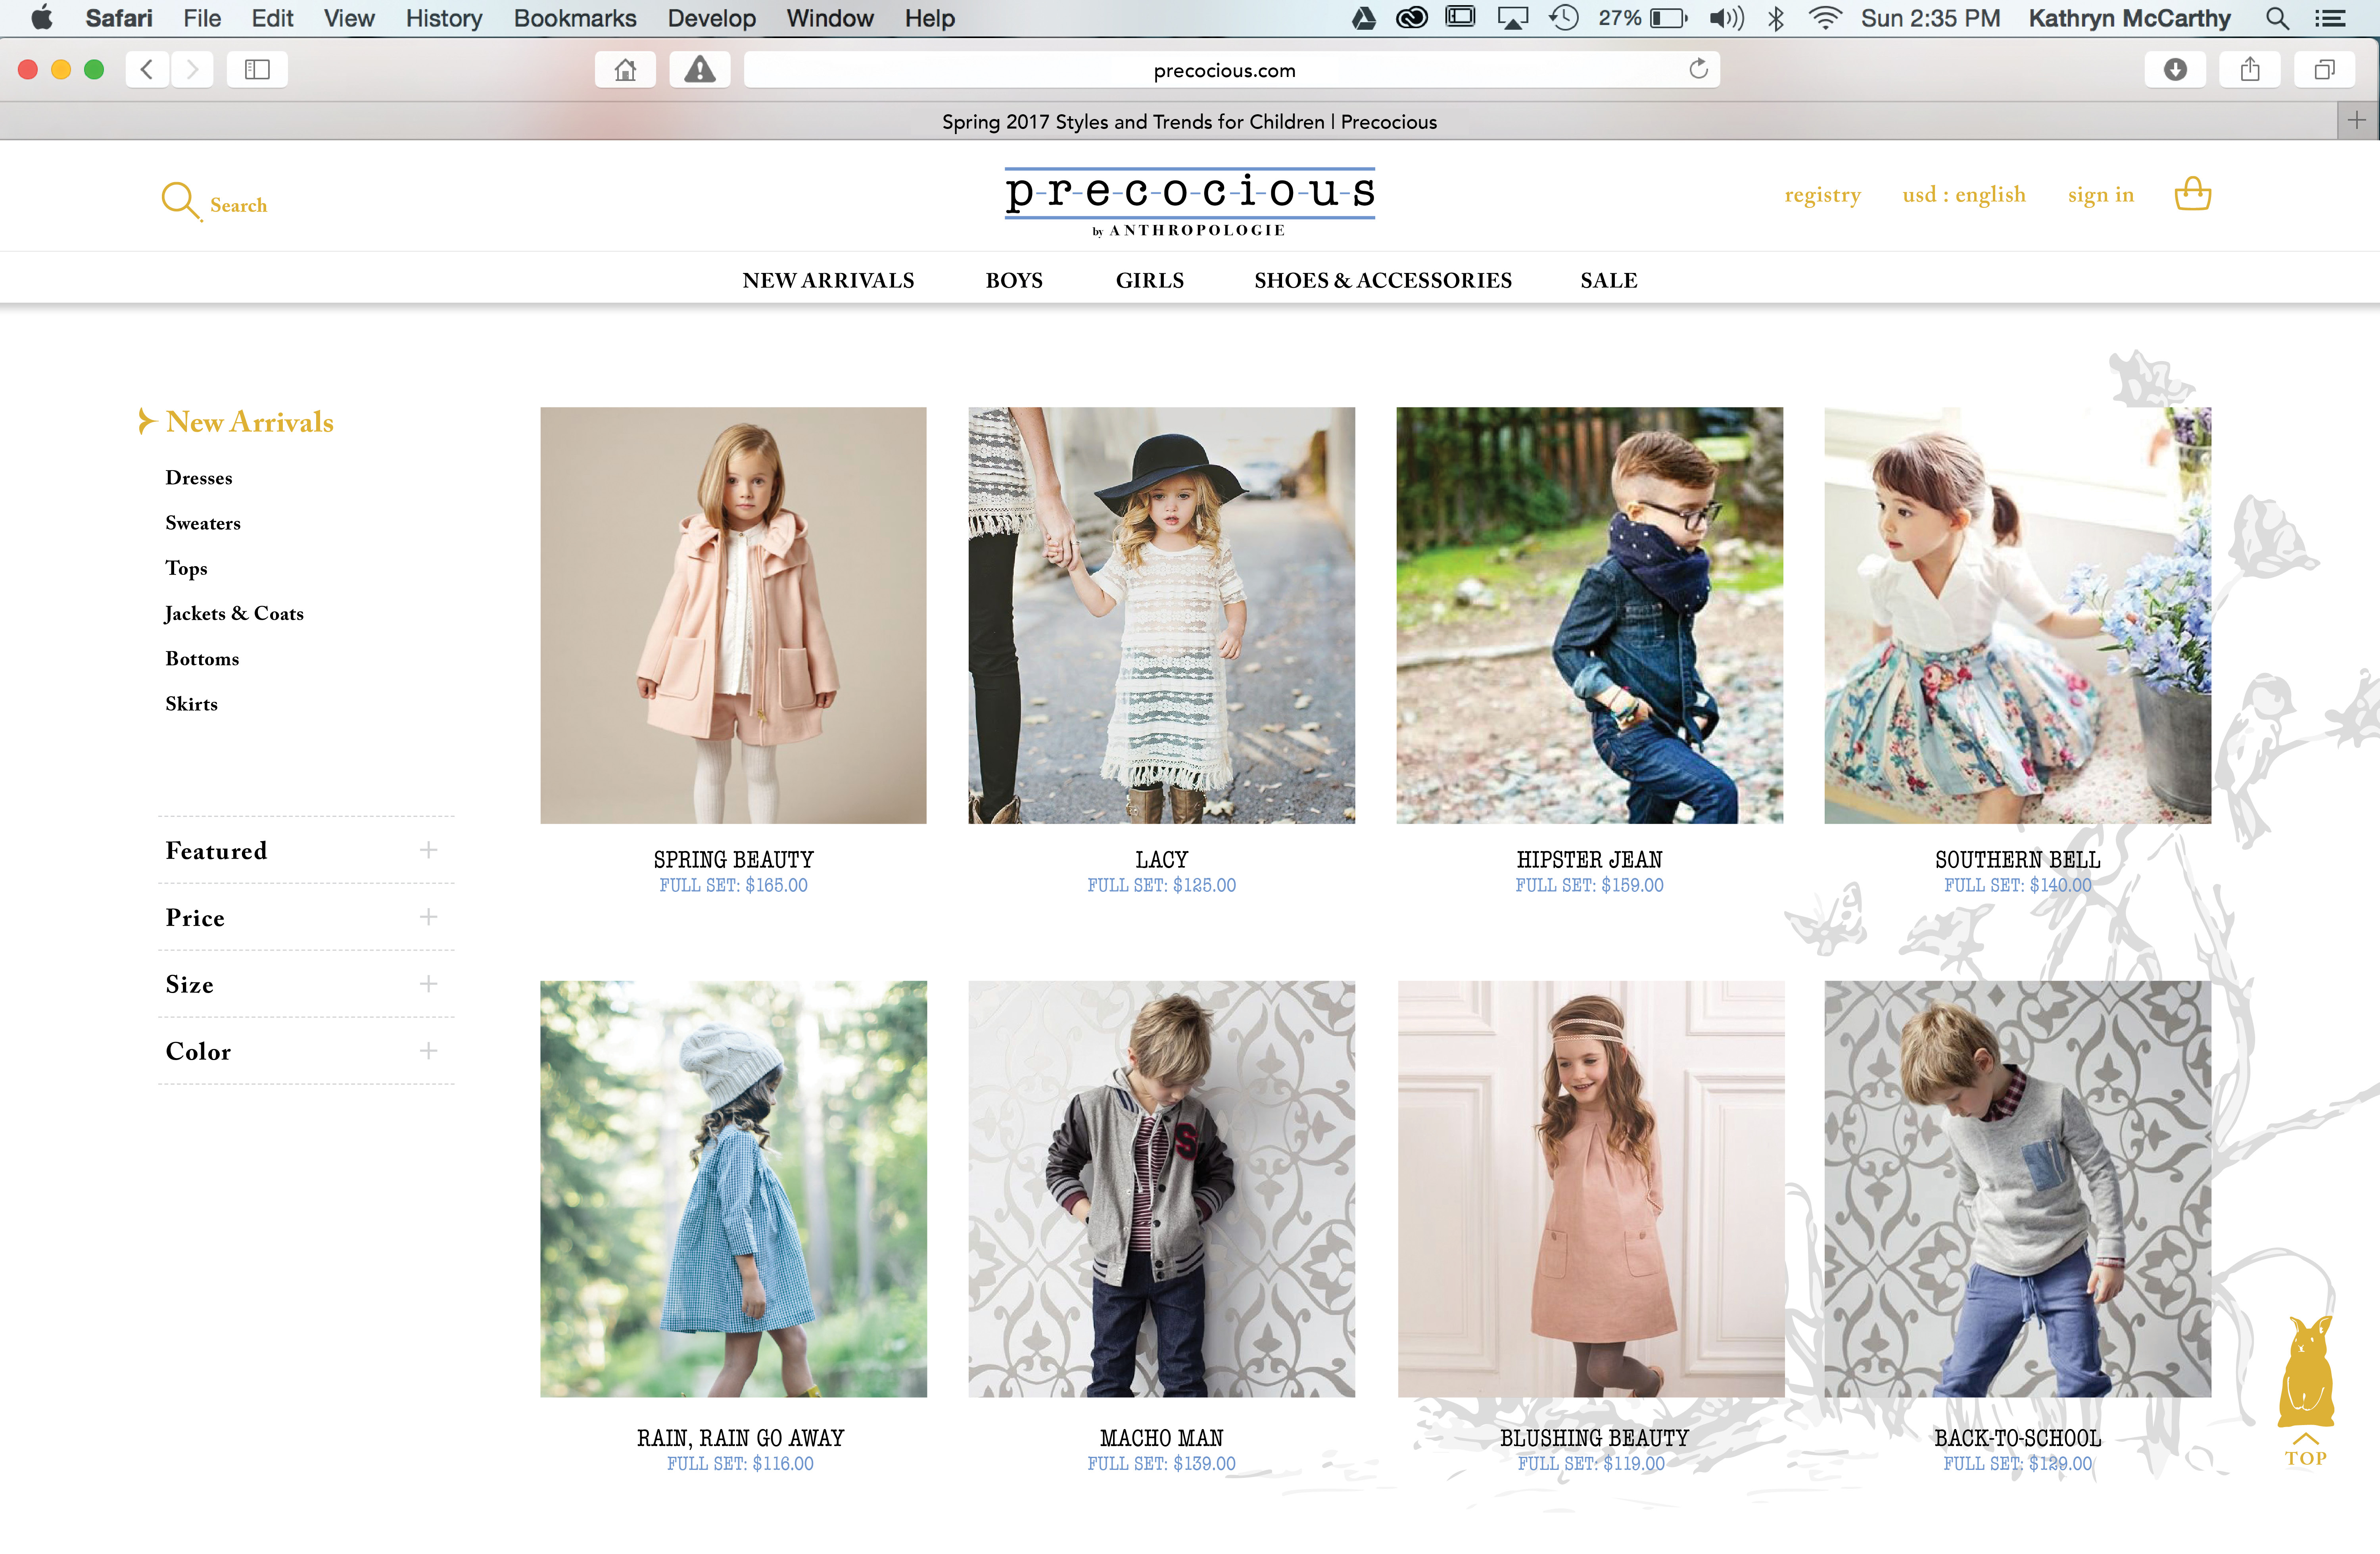 Precocious Product Development Line Extension Website Mock-Up